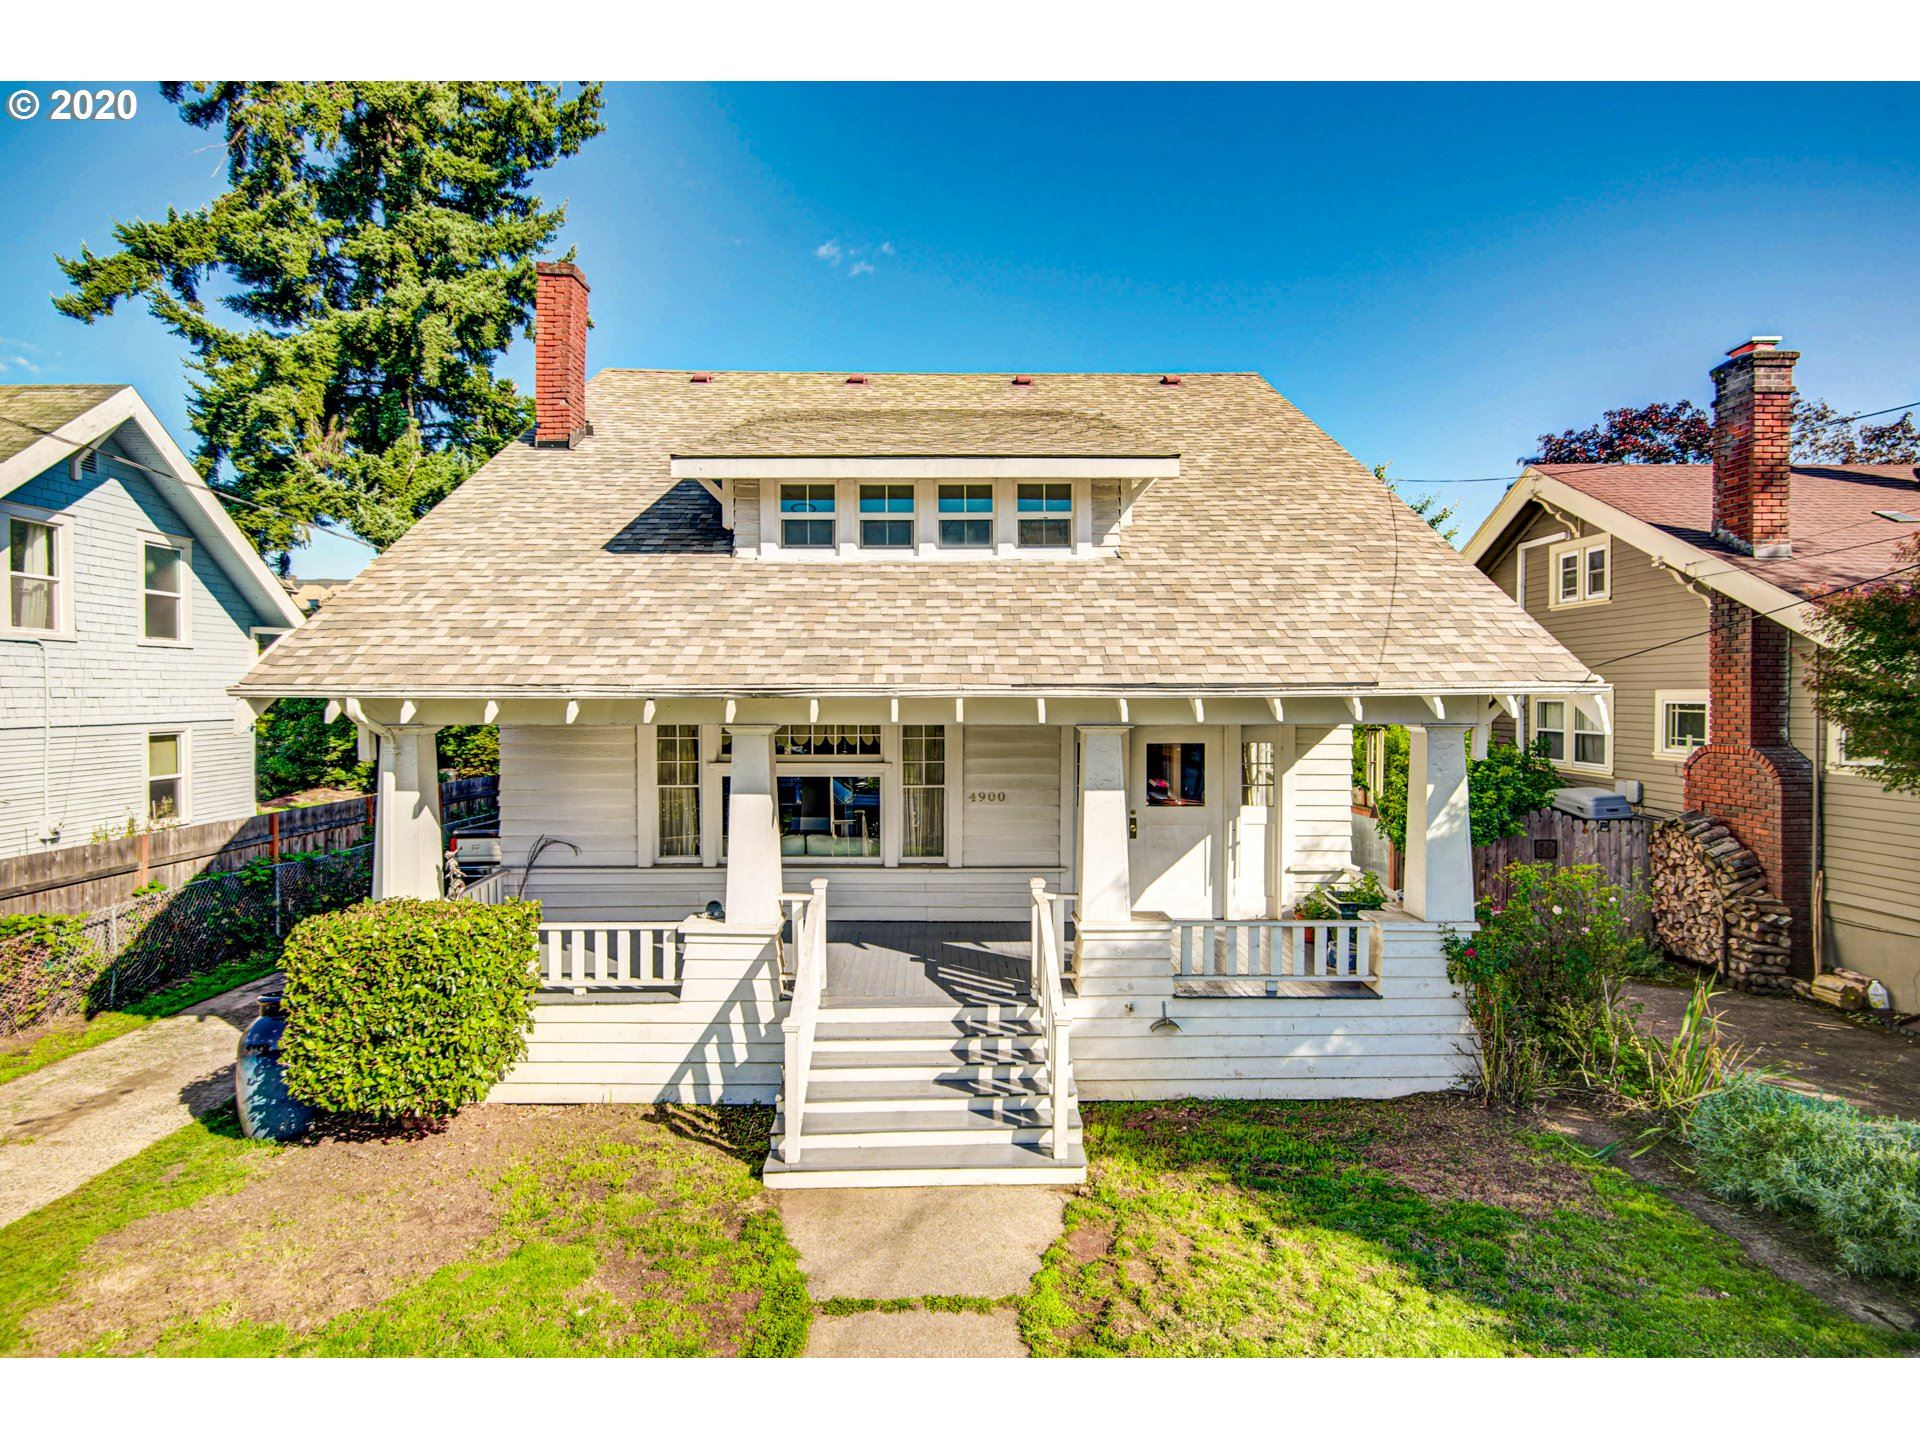 4900 NE 18TH AVE, Portland, OR 97211 - MLS#: 20583353